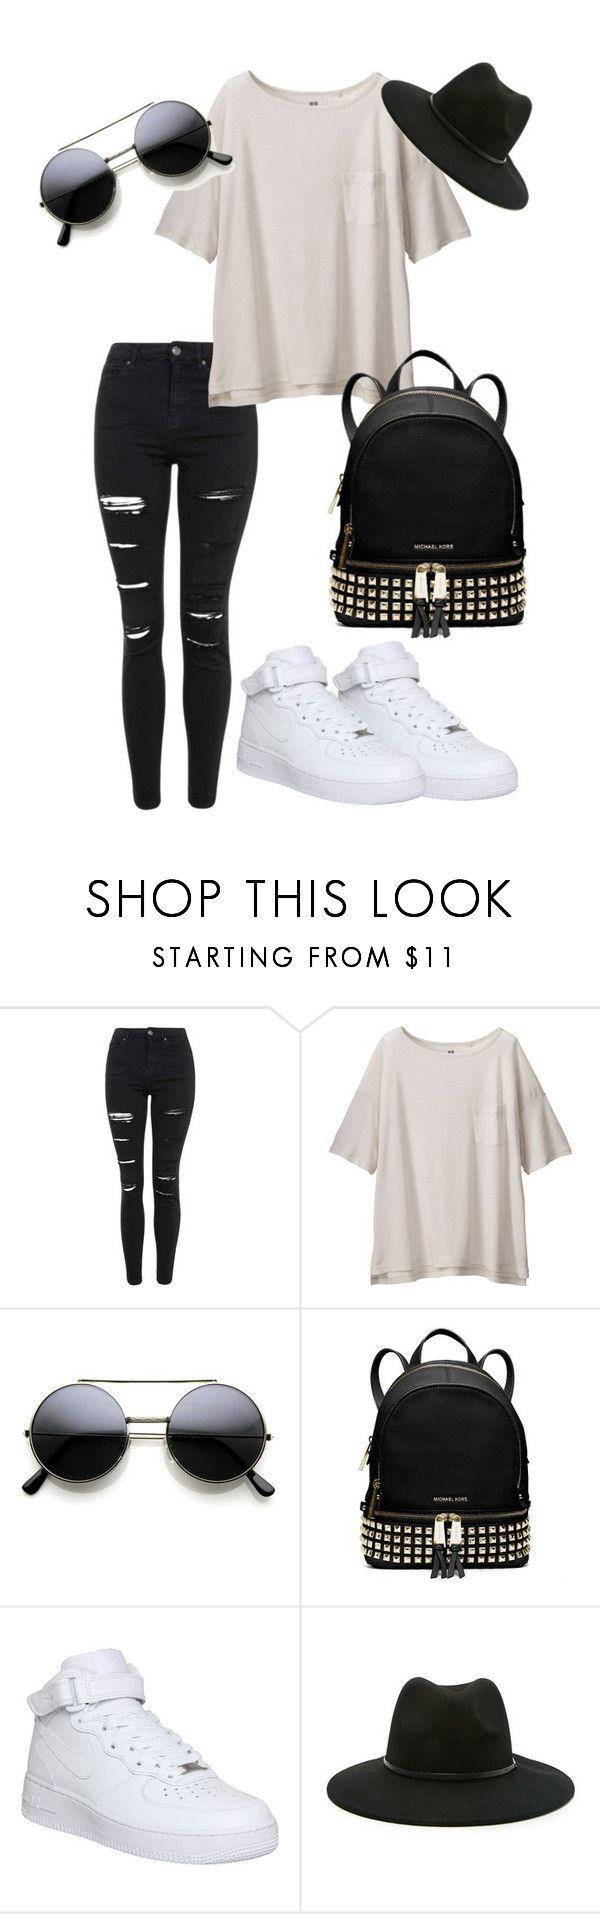 """""""Vintage 2"""" by aishaamin25 ❤ liked on Polyvore featuring Topshop, Uniqlo, MICHAEL Michael Kors, NIKE, Forever 21, vintage, women's clothing, women's fashion, women and female"""